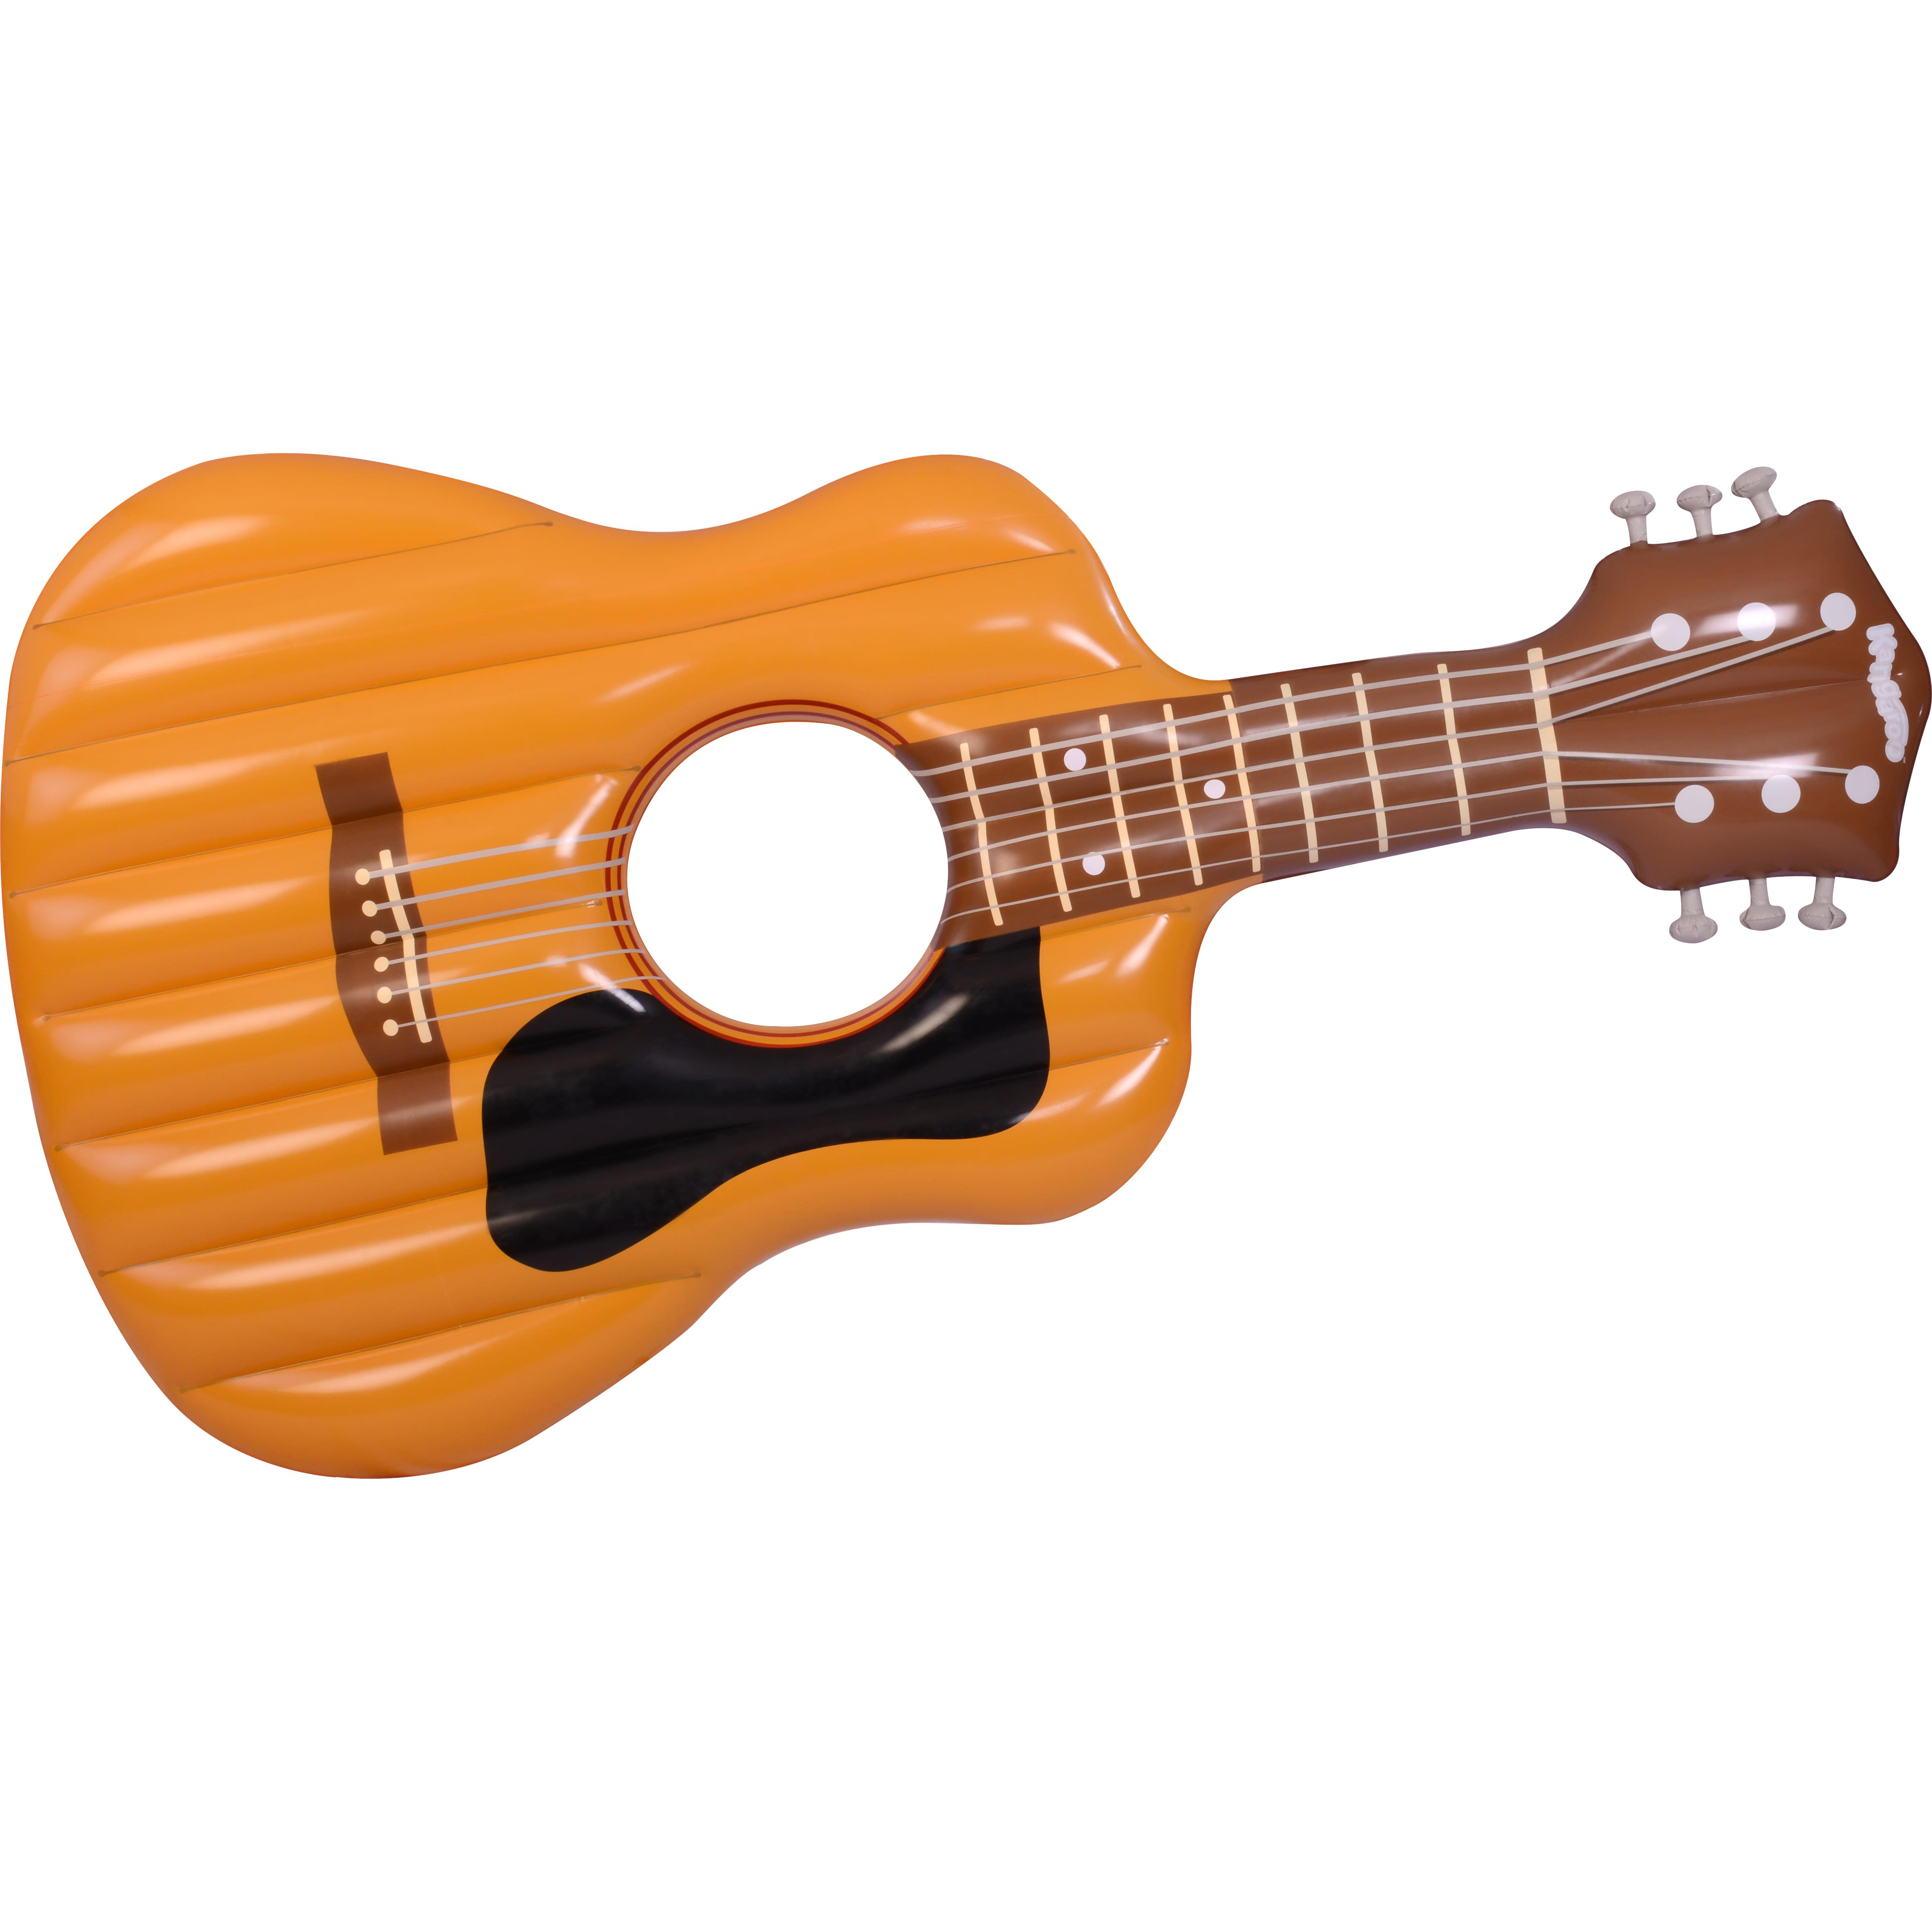 Giant 9 Foot Classical Guitar Ride-On Pool Float